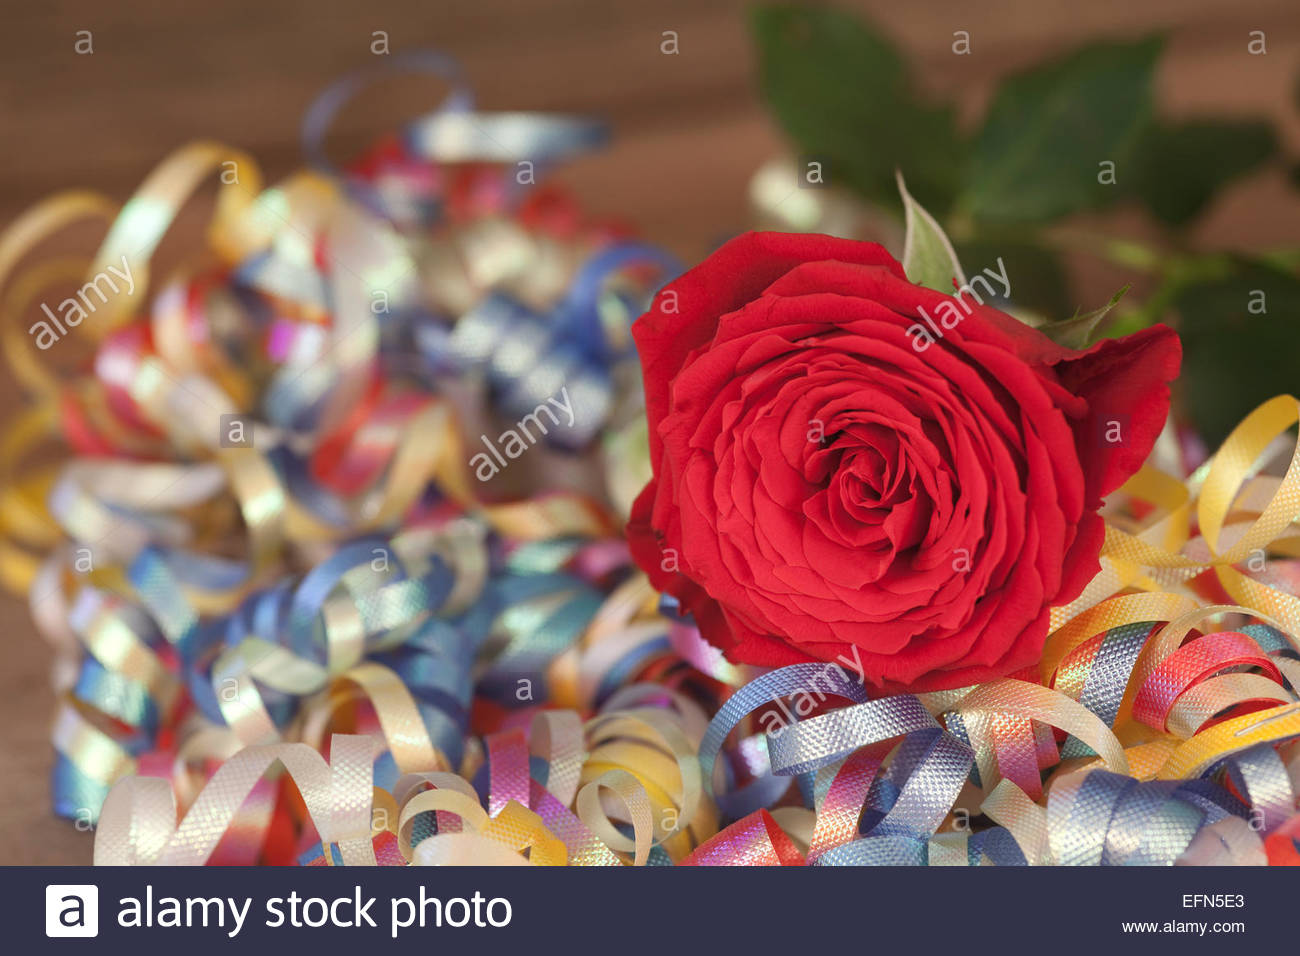 Red cut rose and streamers - Stock Image